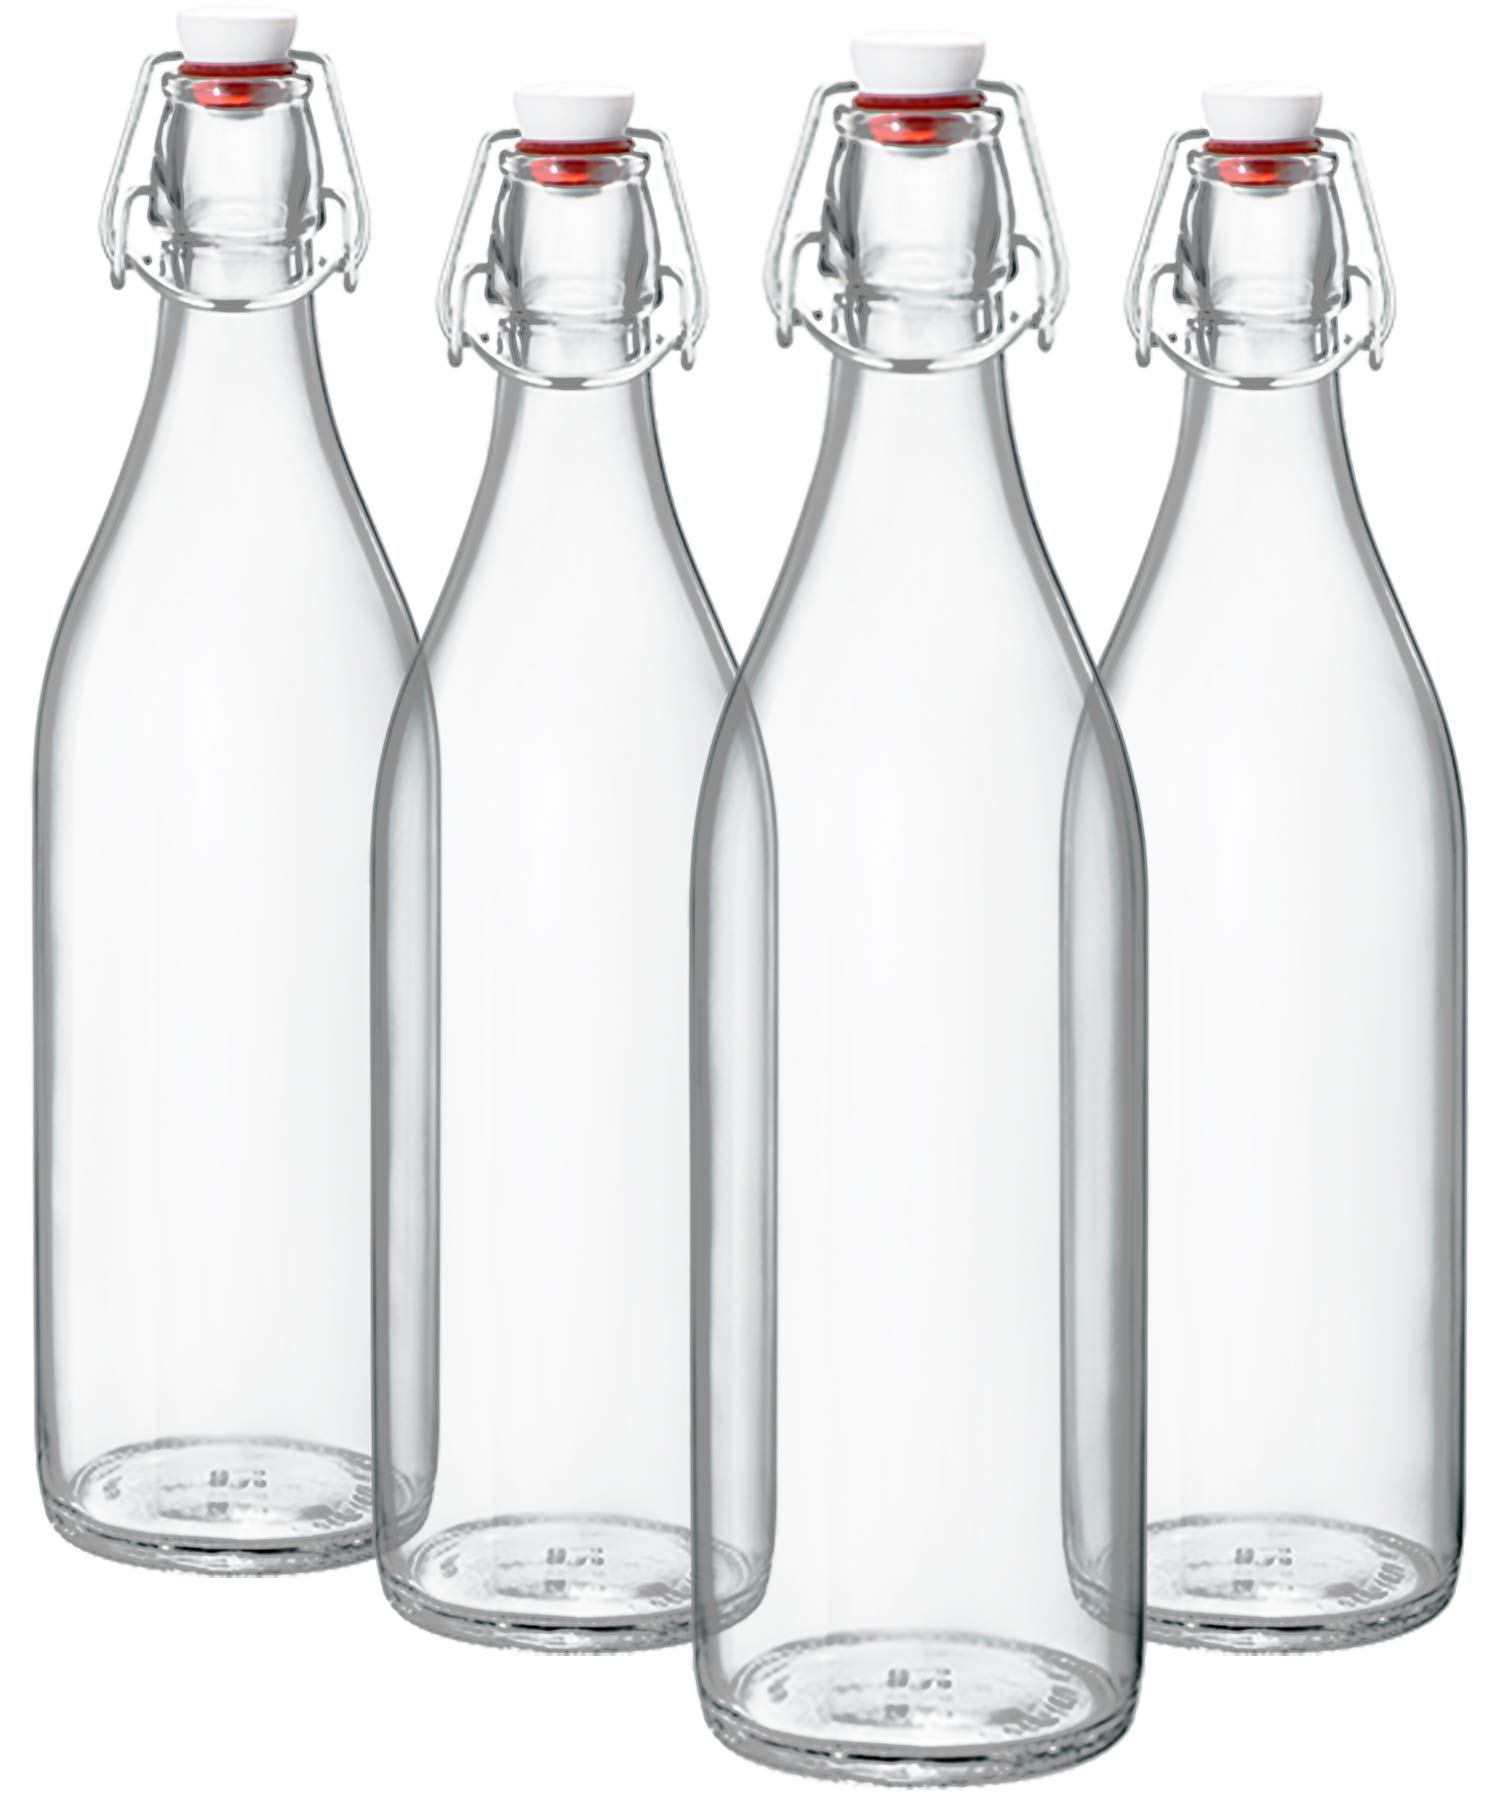 Bormioli Rocco Giara Clear Glass Bottle With Stopper [Set of 4] Swing Top Bottles Great for Beverages, Oil, Vinegar | 33 3/4 oz by Bormioli Rocco